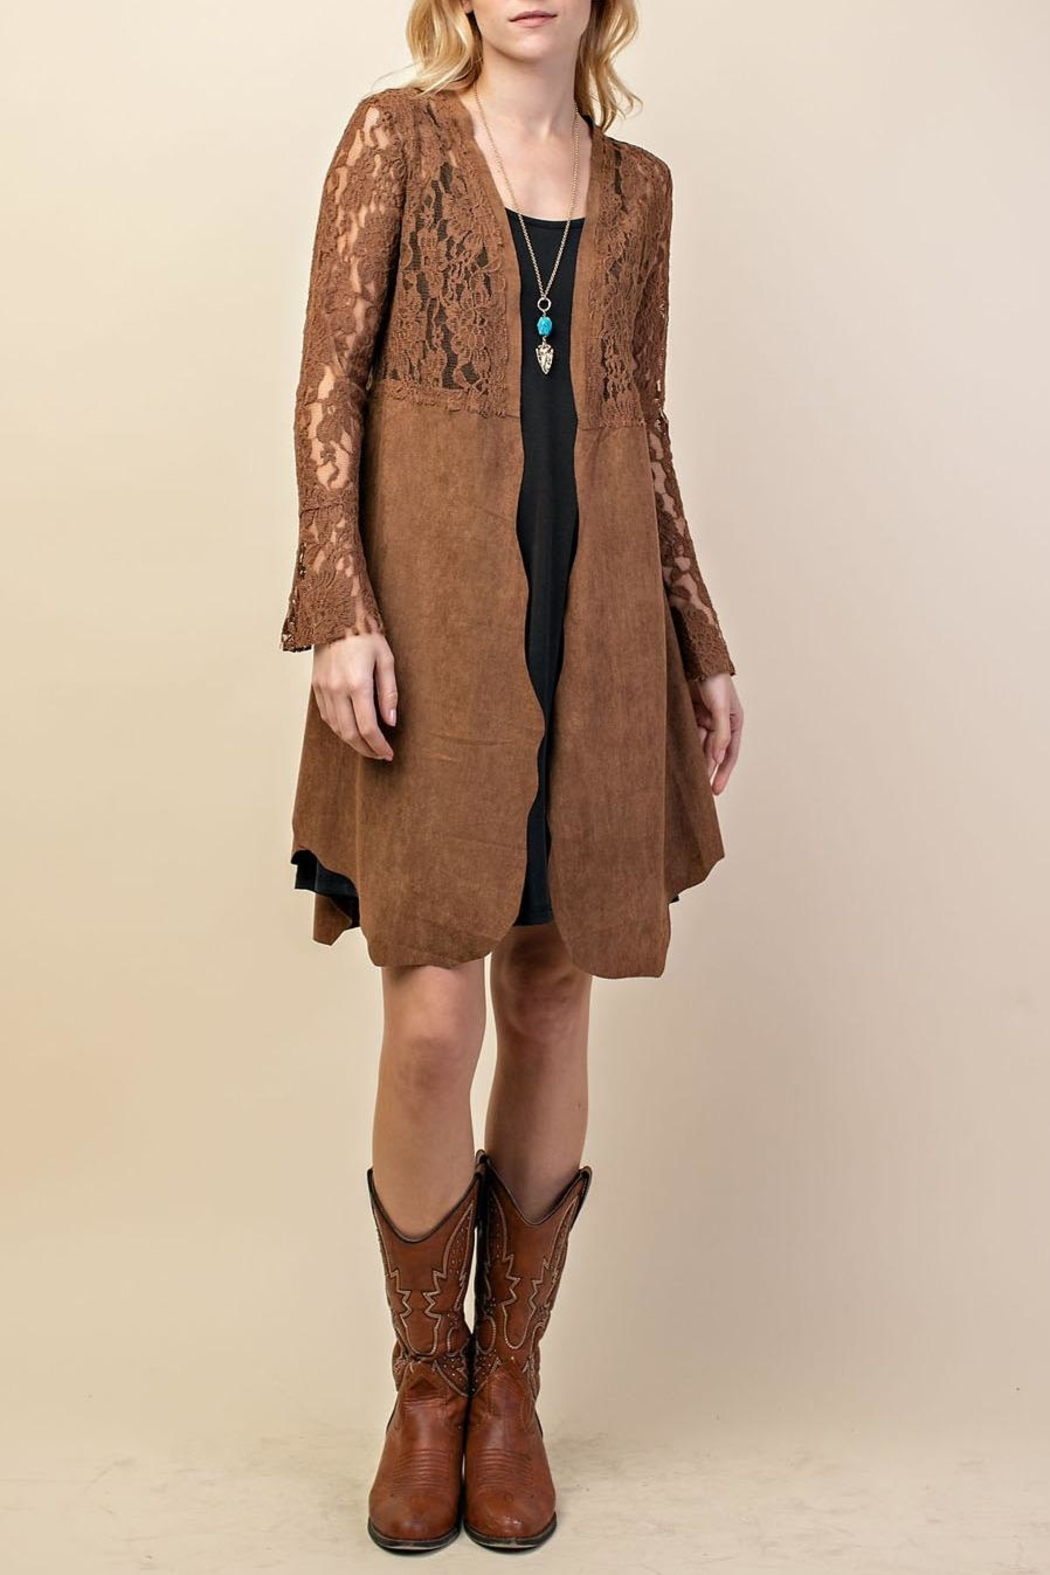 Vocal Apparel Lacey Suede Duster - Main Image